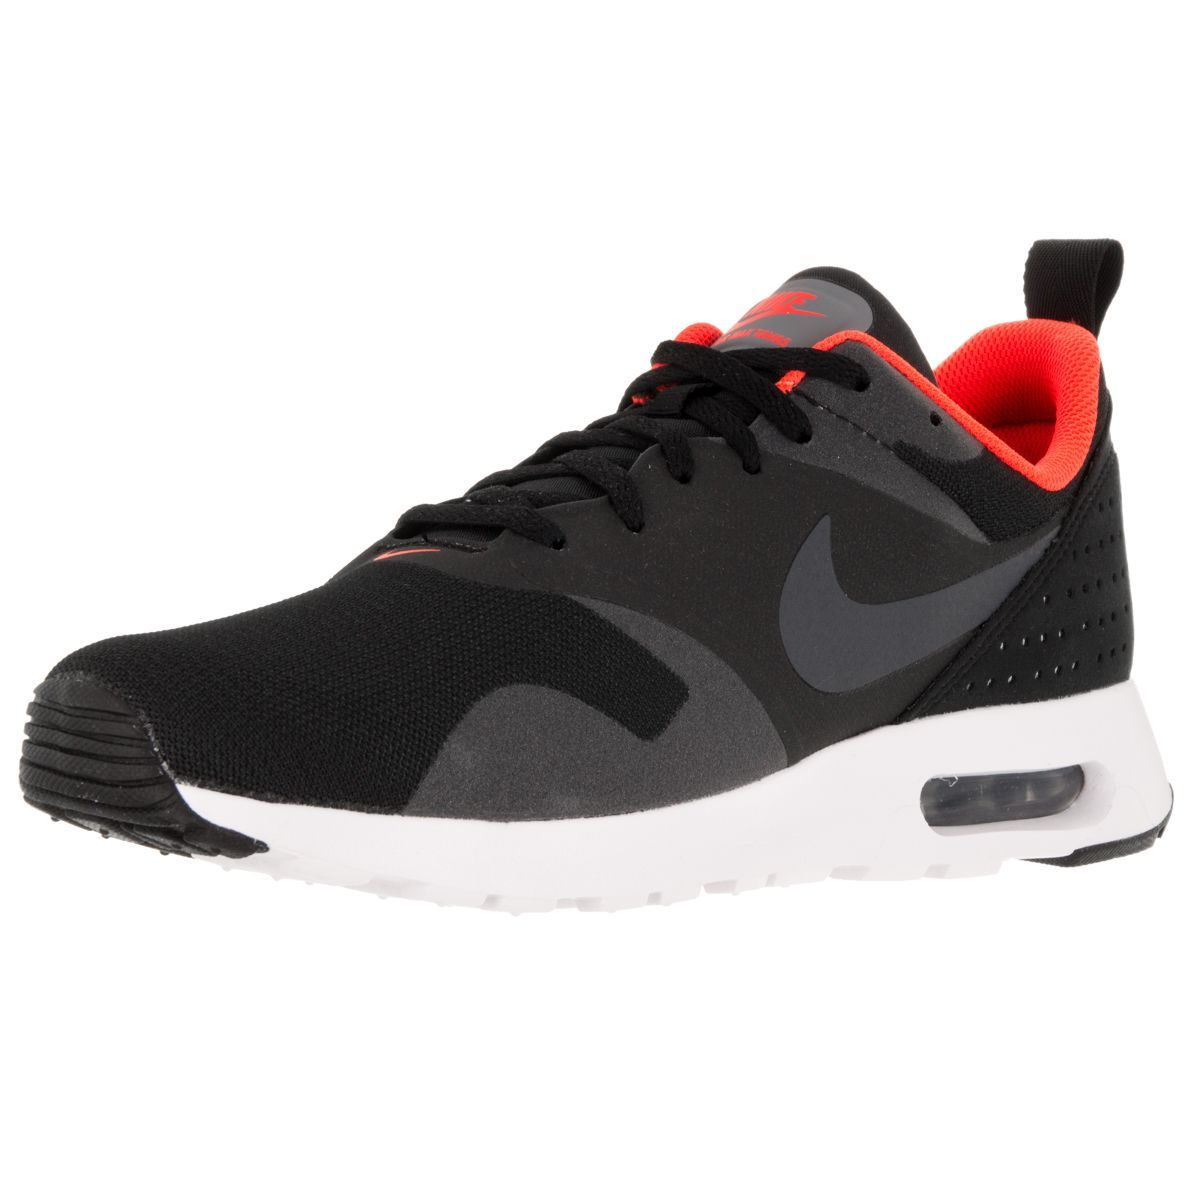 Nike Men's Air Max Tavas /Dark Grey/Total Crimson/White Running Shoe